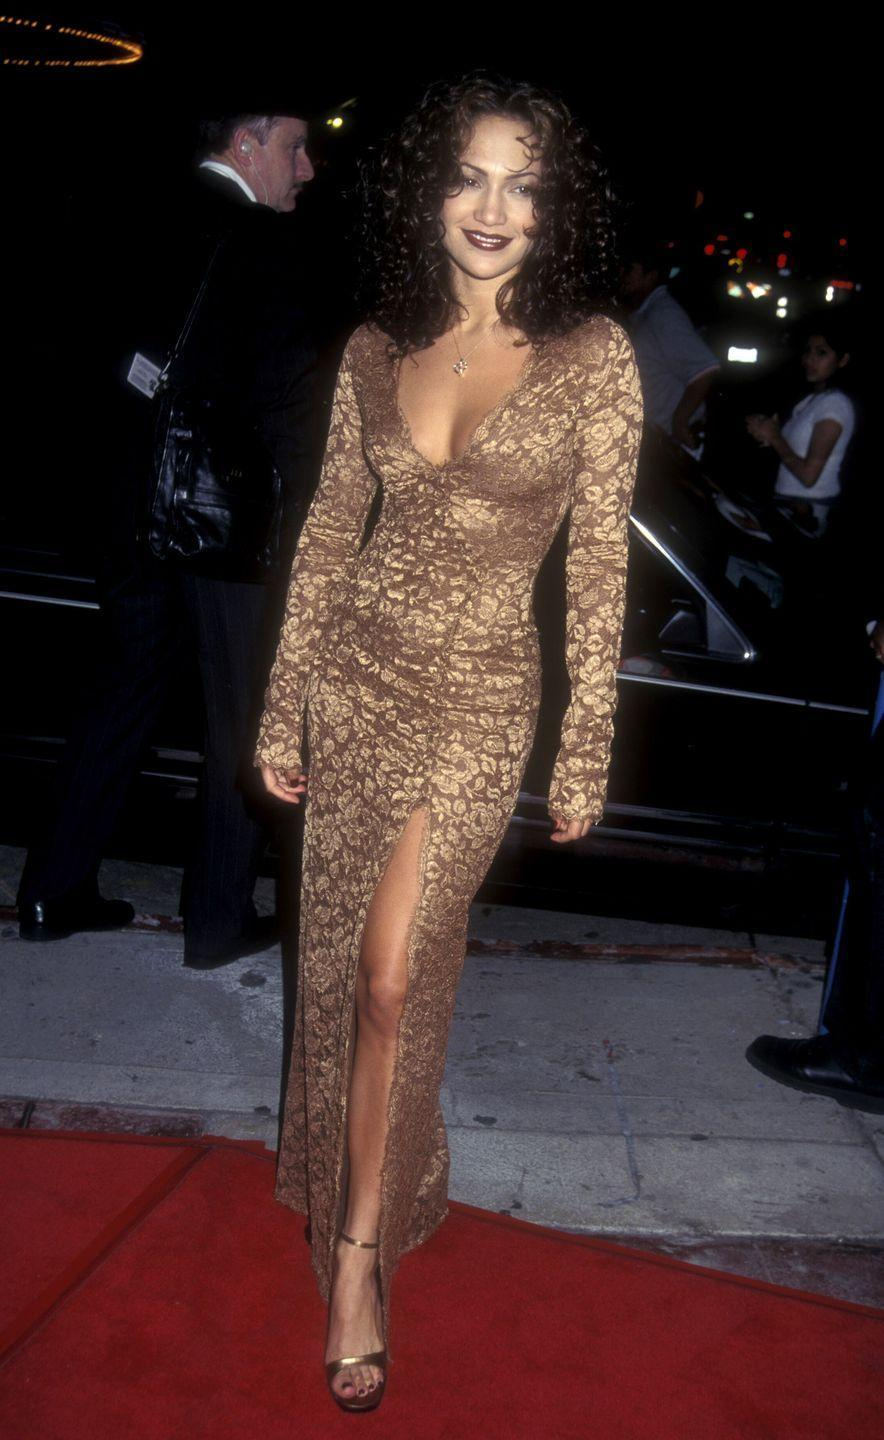 <p>Wearing a crushed velvet maxi dress at a film premiere in California. </p>